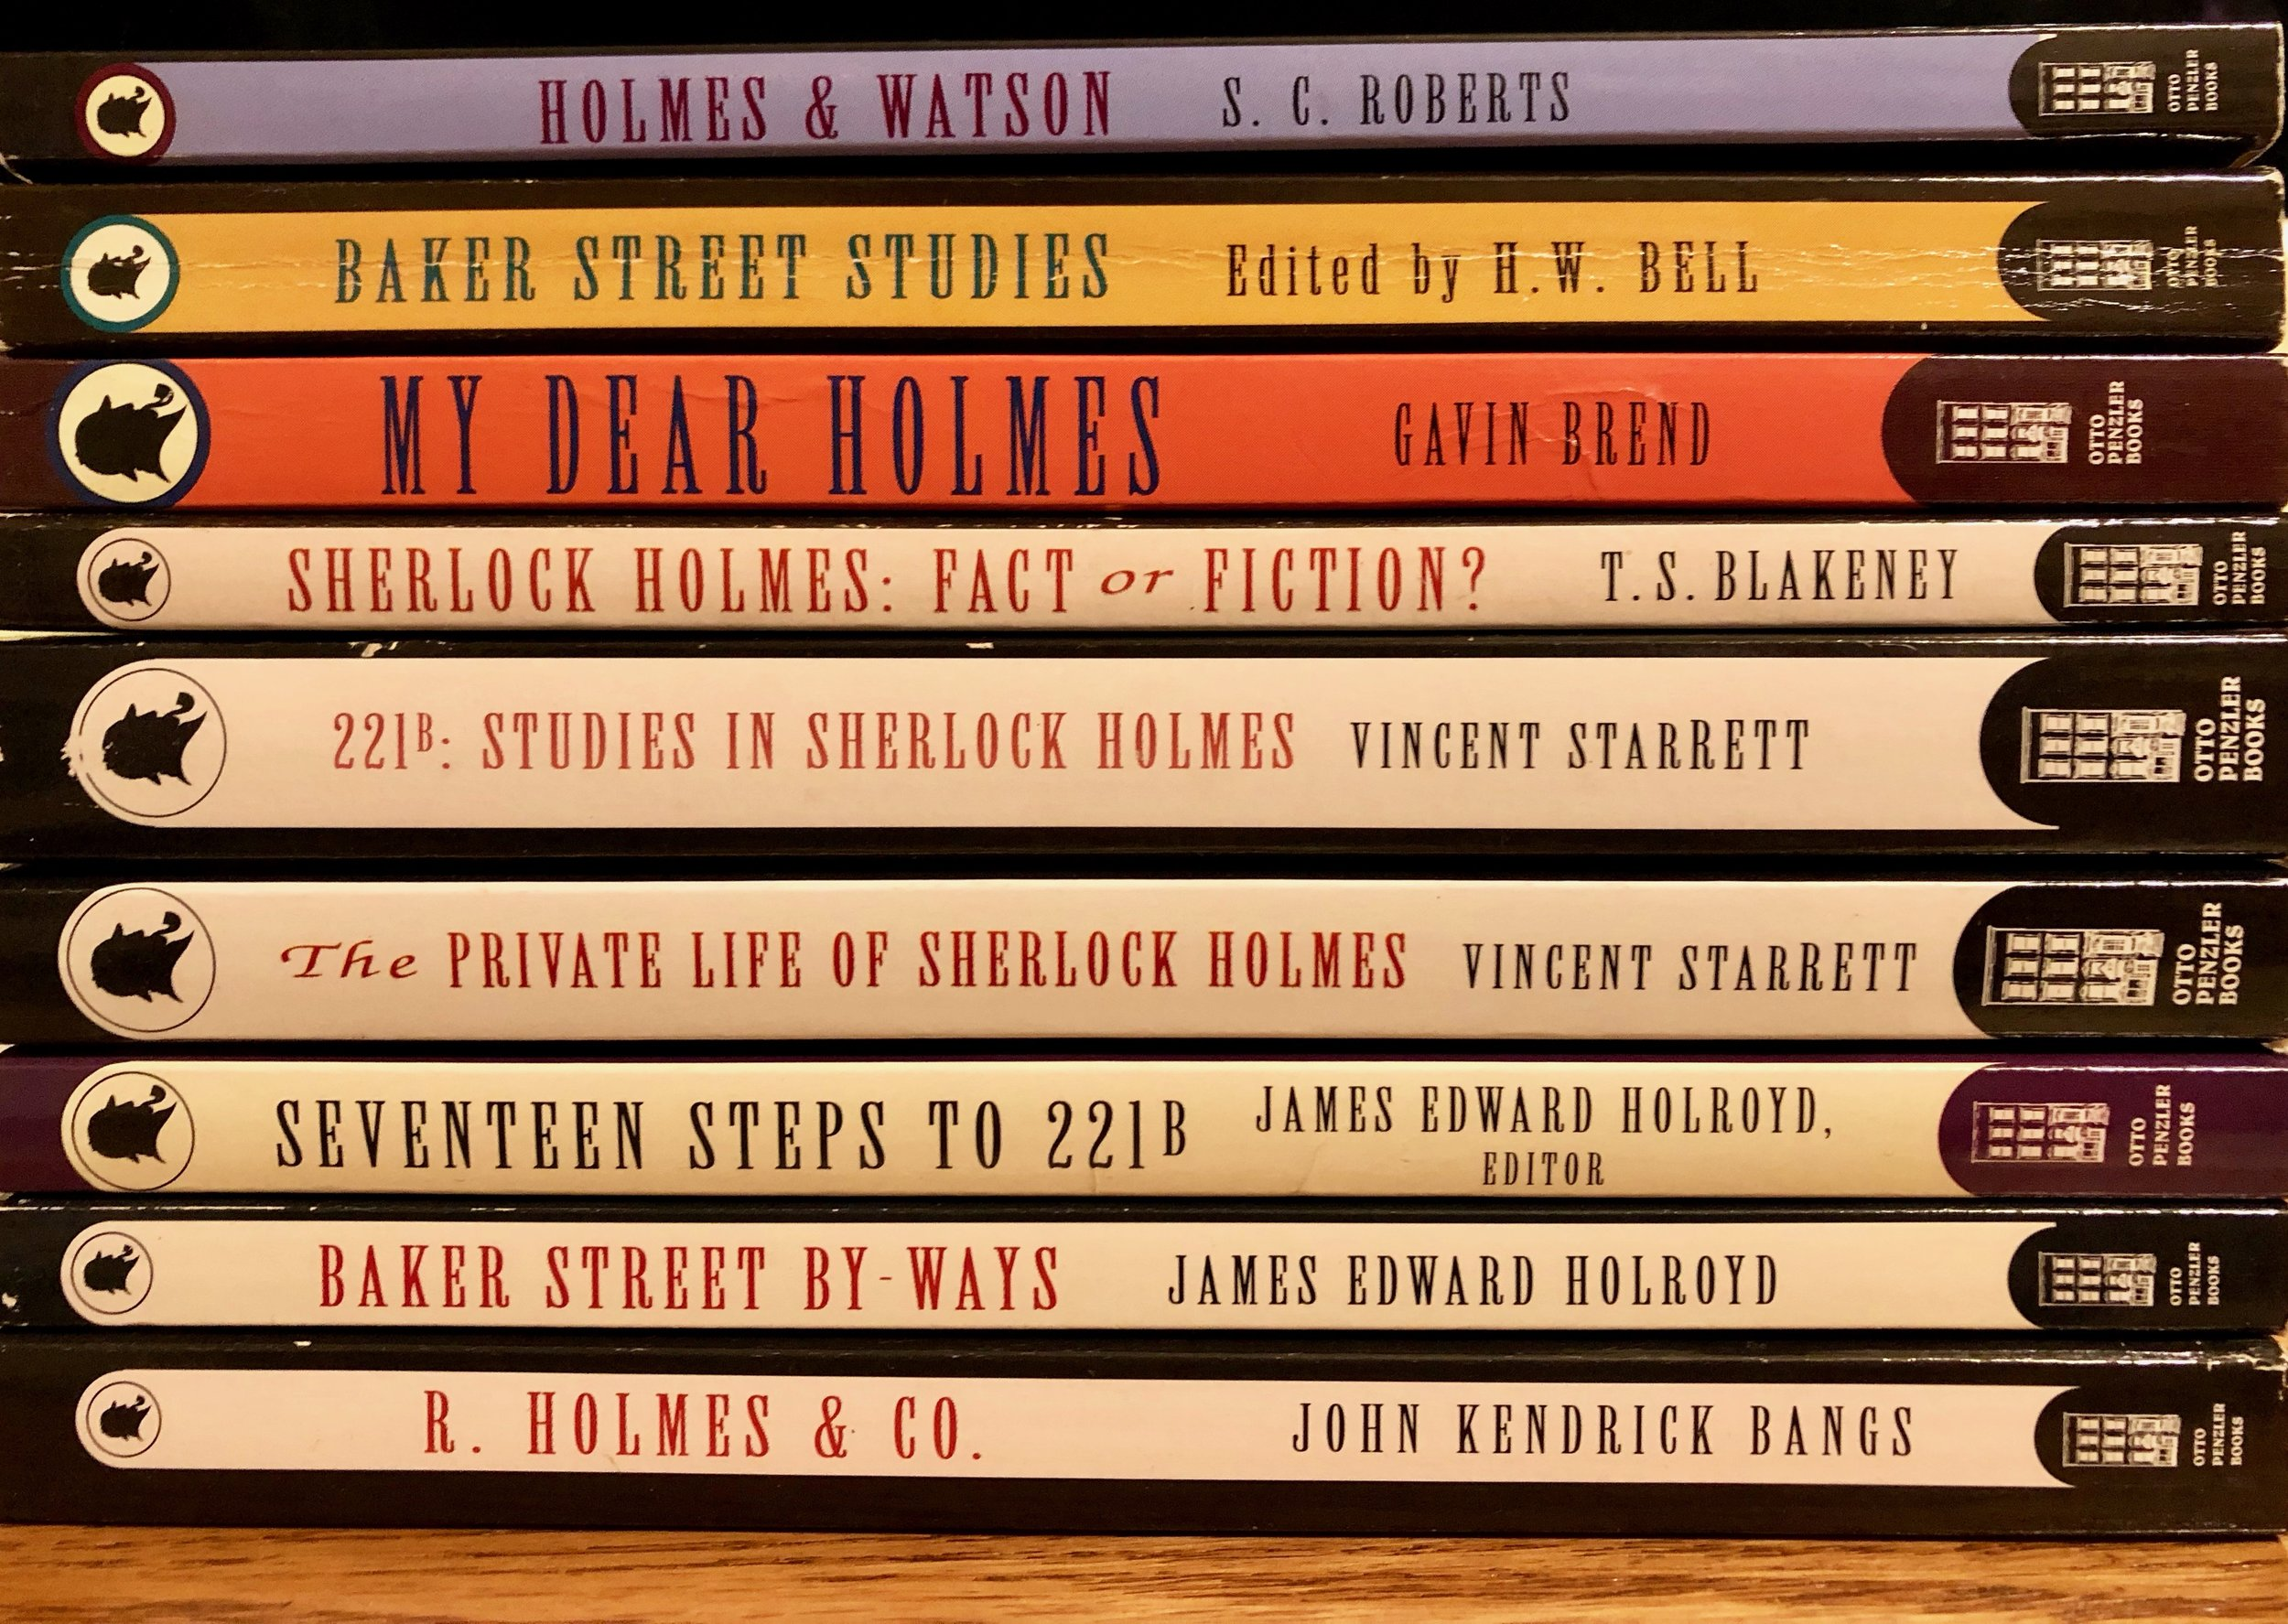 All nine books in the Otto Penzler's Sherlock Holmes Library series.